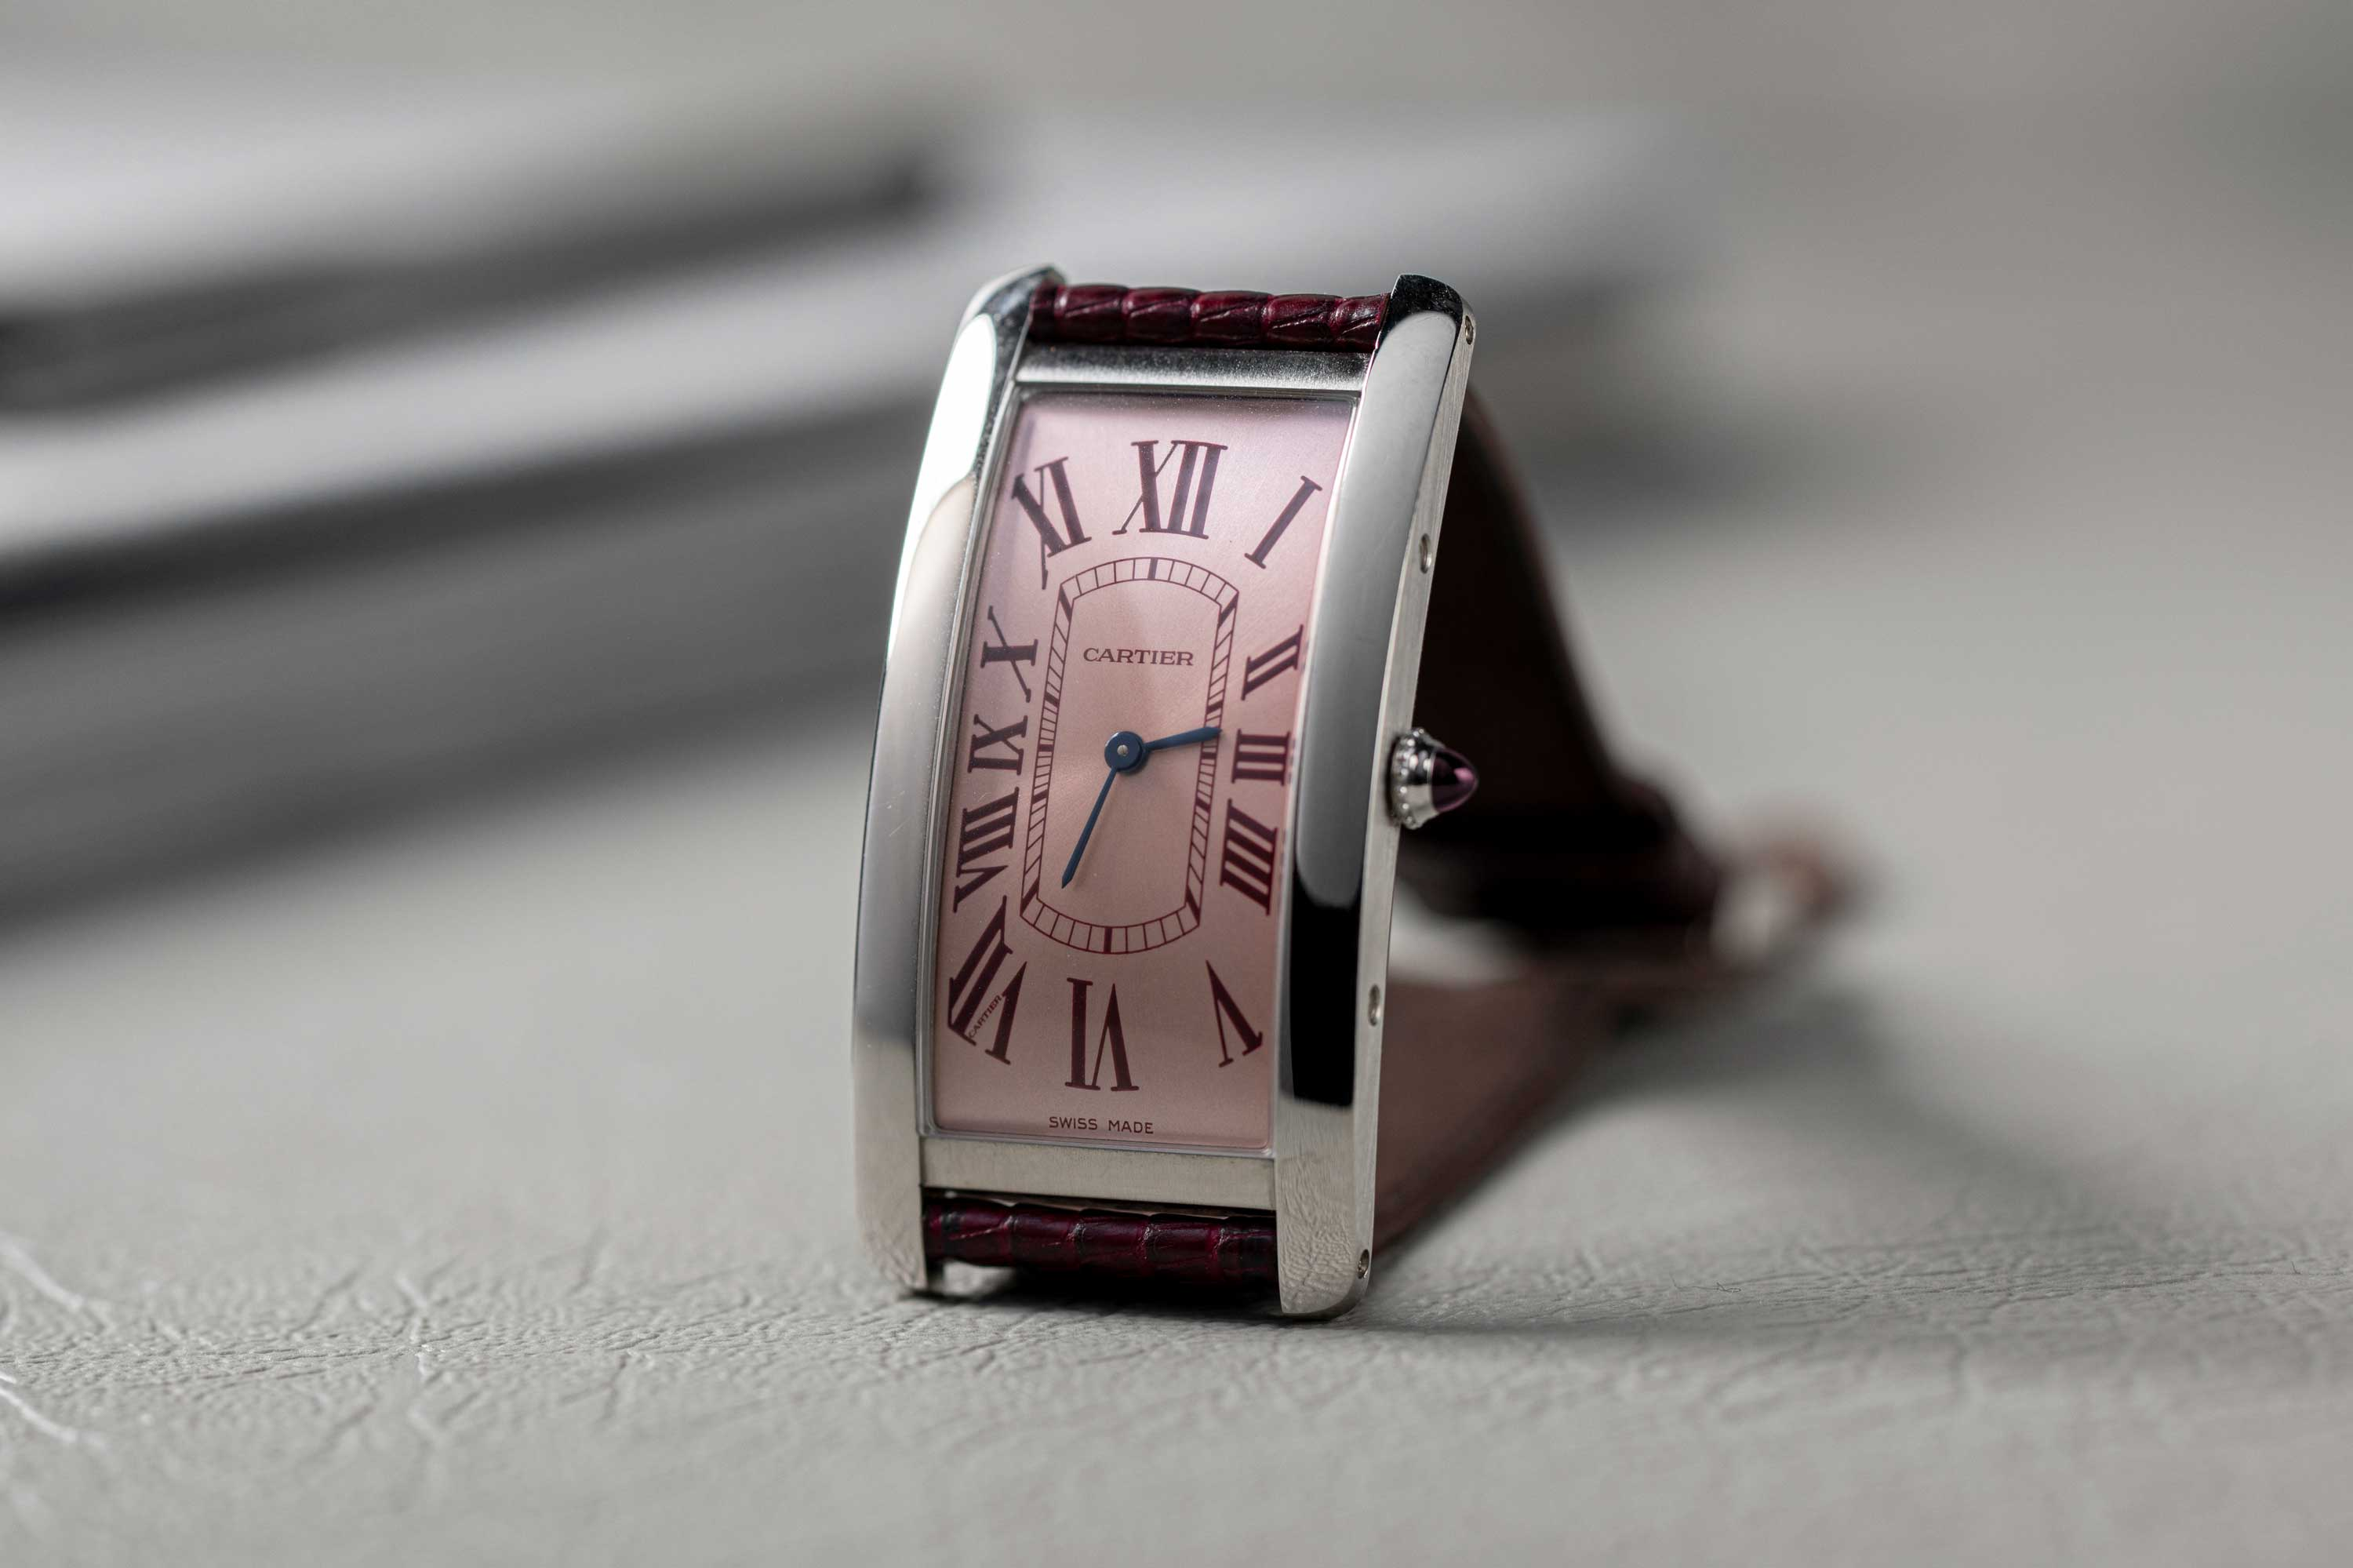 Wei Koh's special order Cartier Tank Cintrée in platinum with a salmon dial and burgundy Roman numerals, fitted on a burgundy lizard strap made by Federico De Peppo of Huitcinq1988 (©Revolution)